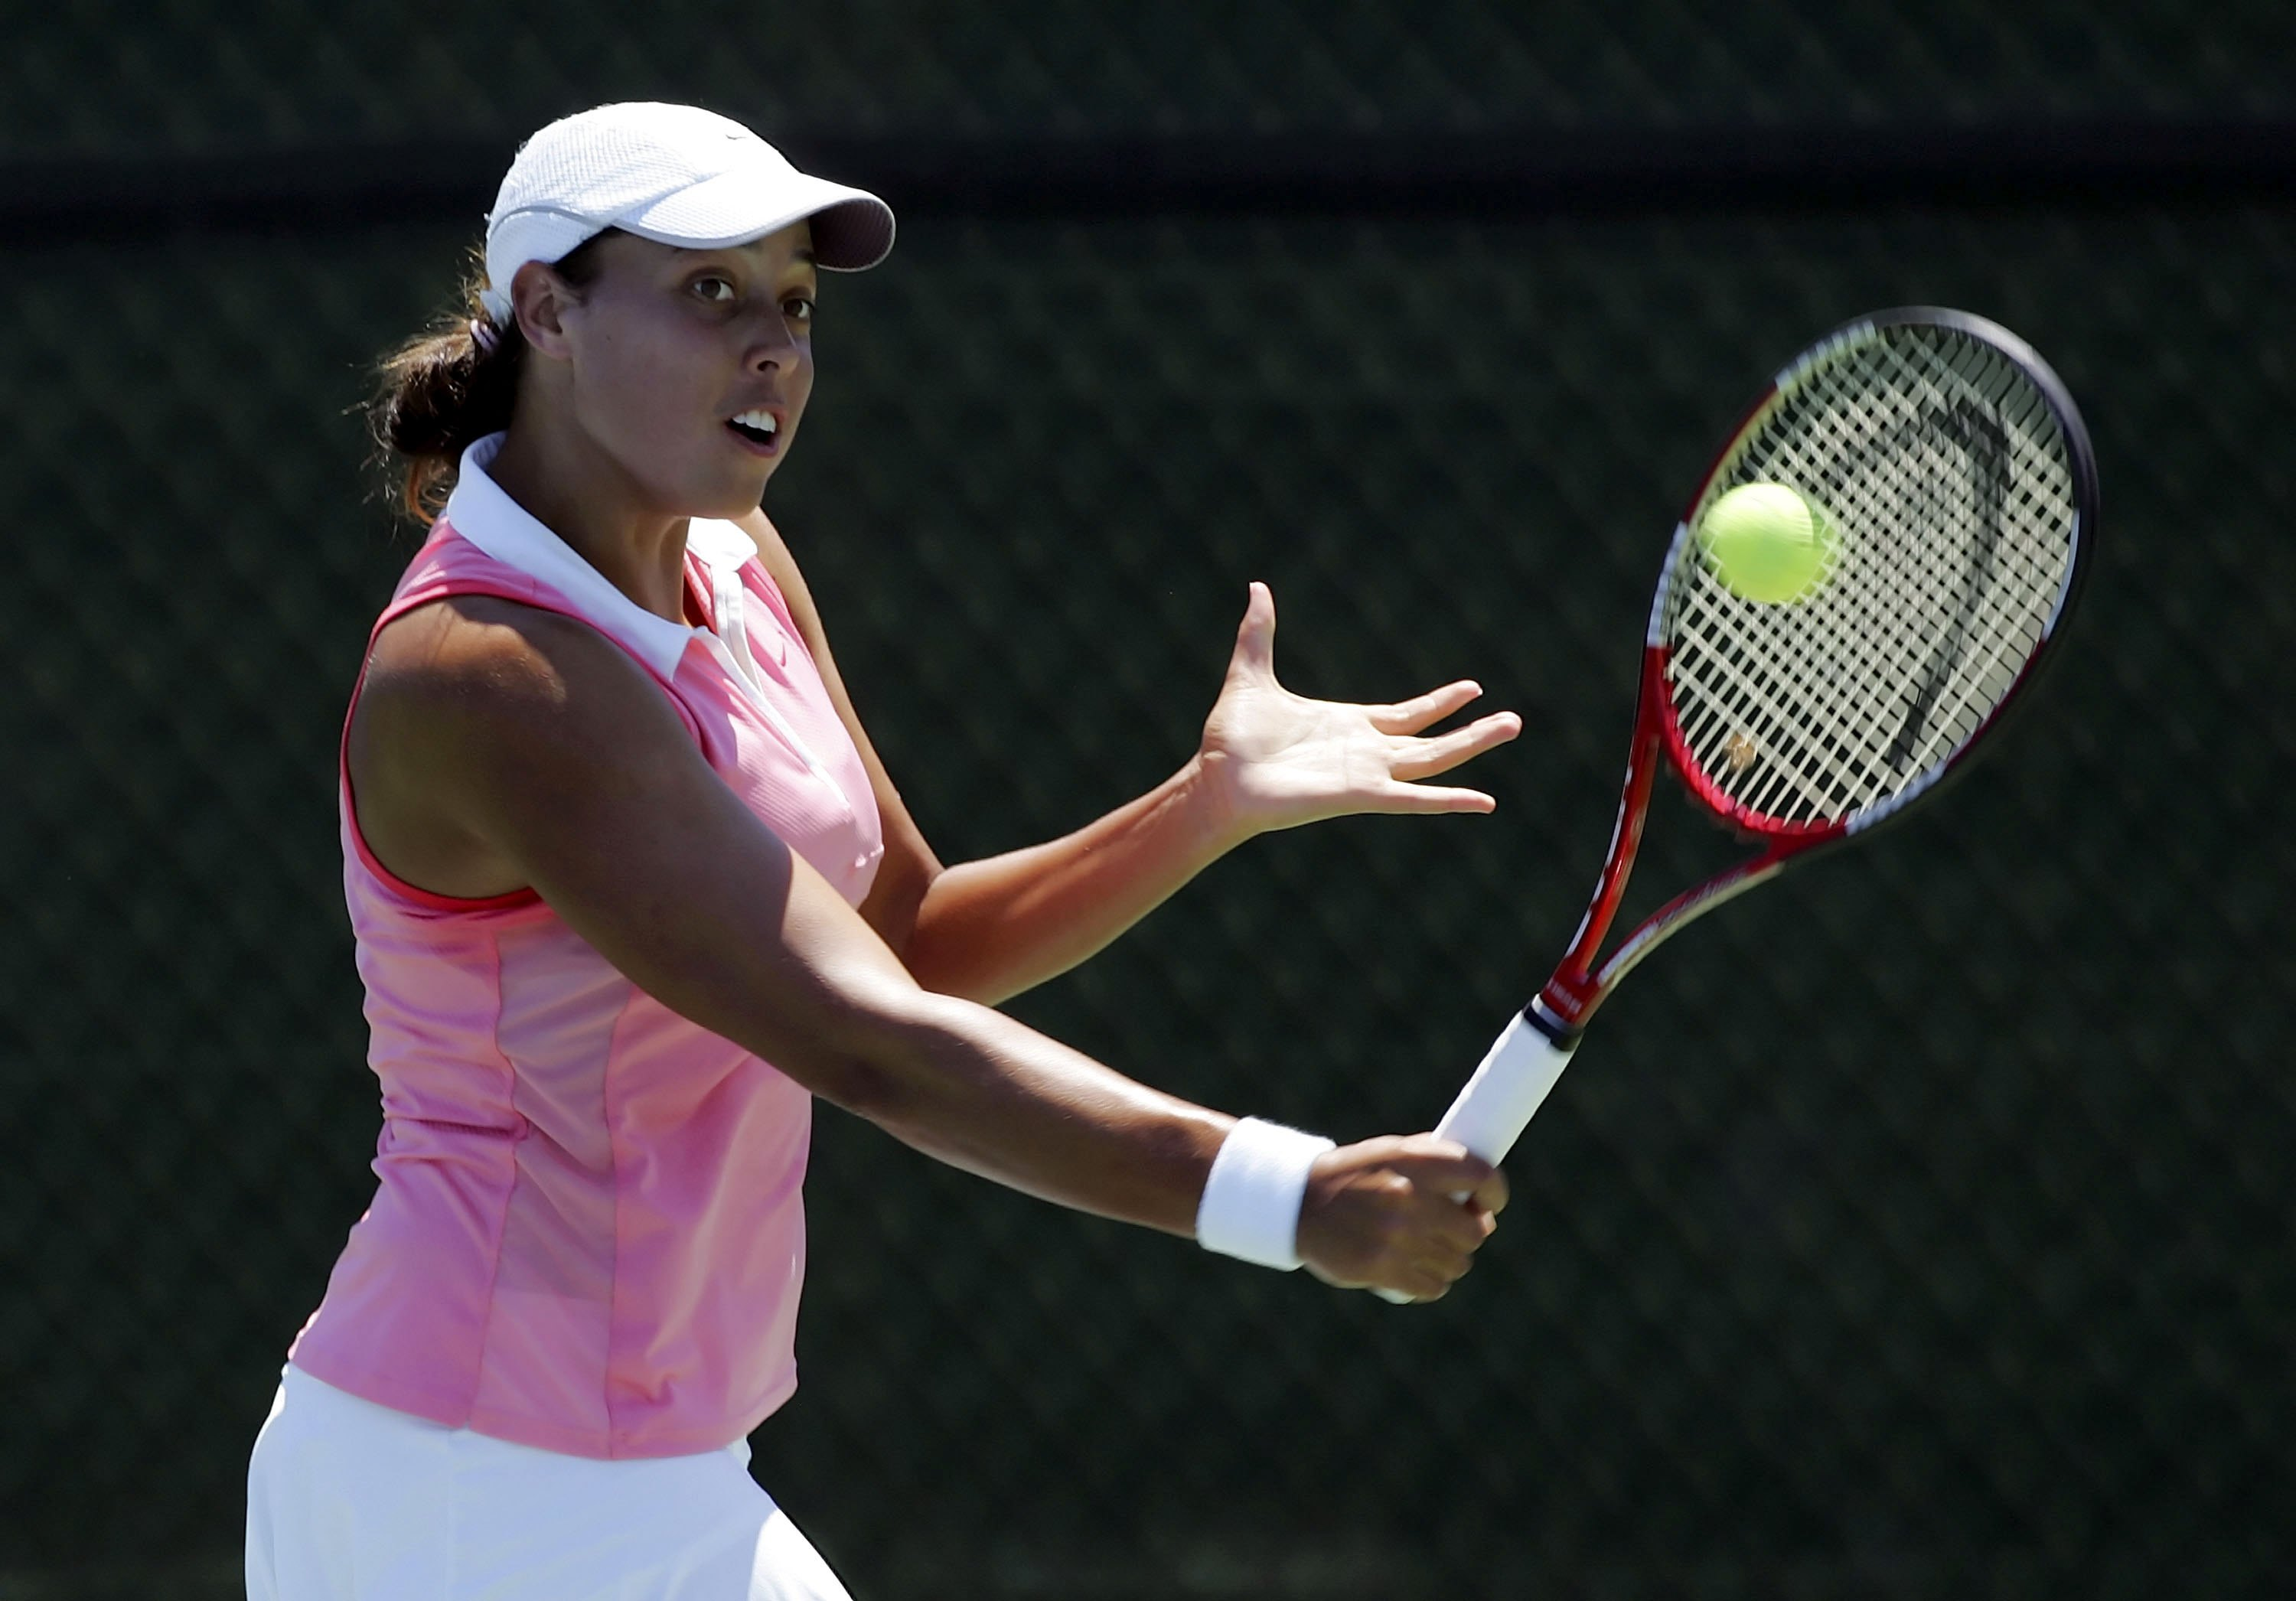 CARSON, CA - AUGUST 8: Alexandra Stevenson hits a backhand during her match against Samantha Stosur of Australia on Day 2 of the JPMorgan Chase Open on August 8, 2006 at Home Depot Center in Carson, California. Stosur won 6-4, 6-2. (Photo by Lisa Blumenfe